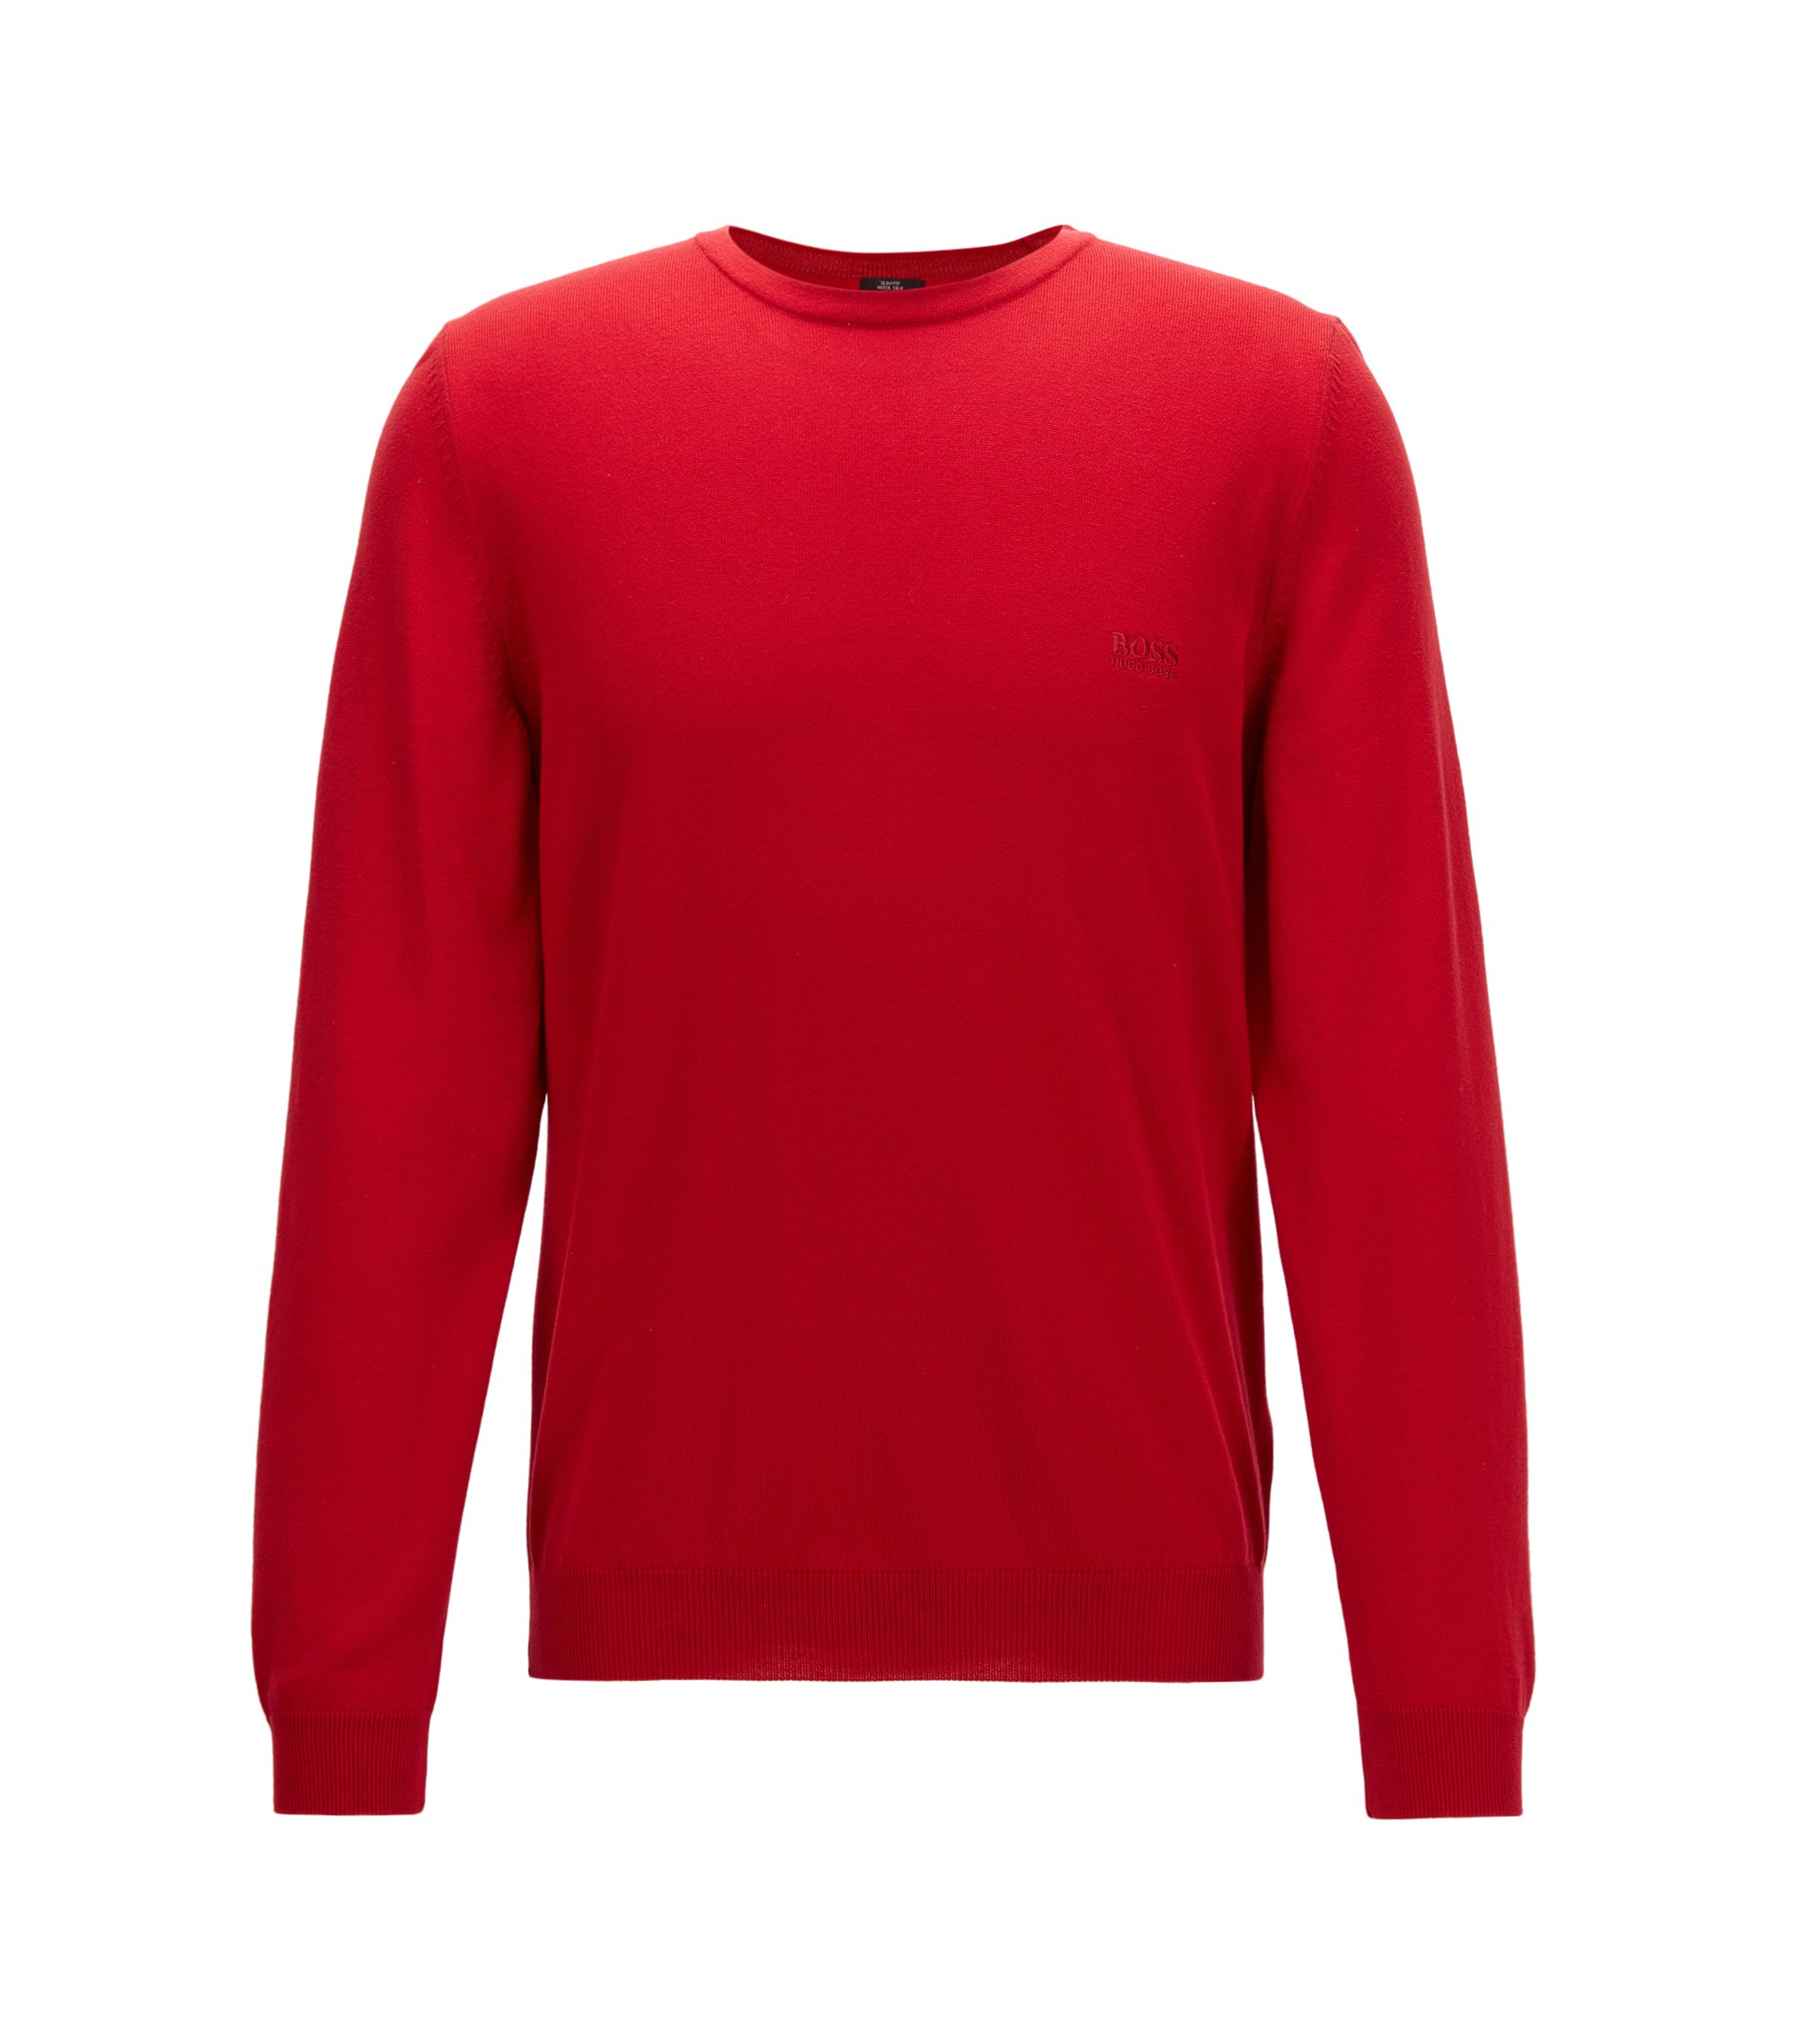 Crew-neck cotton sweater with logo embroidery, Red